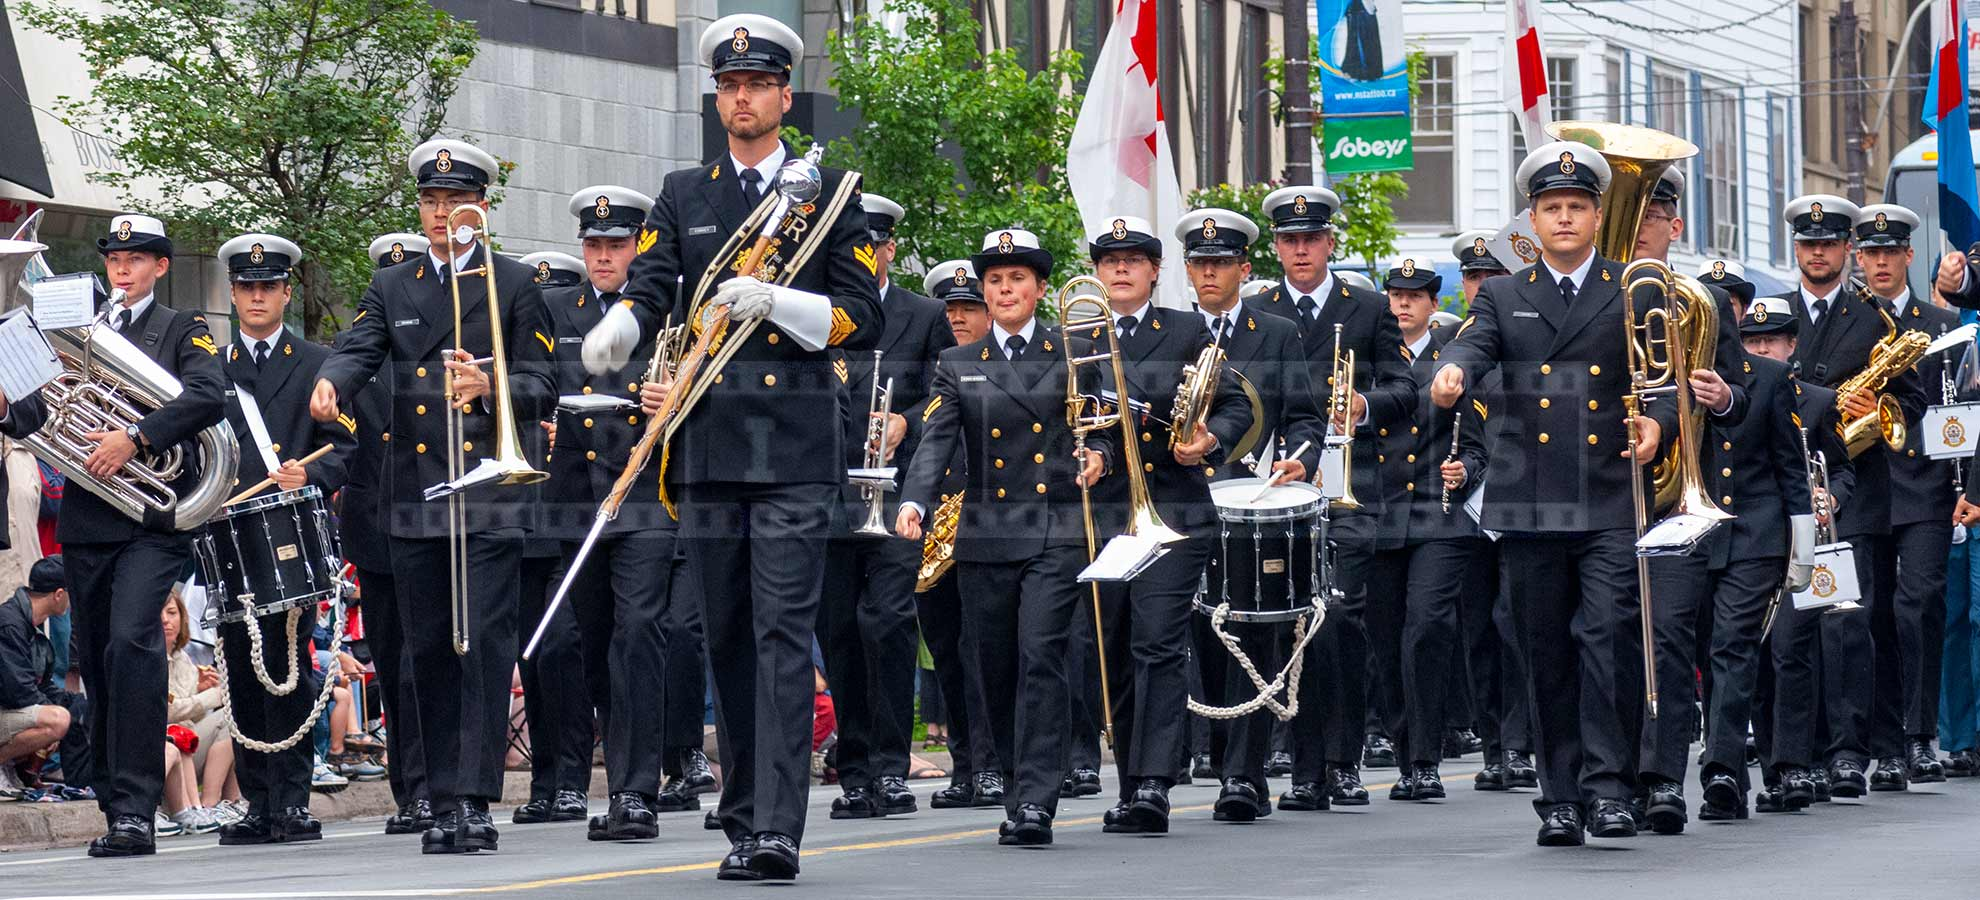 Canadian Navy brass band at tattoo parade in Halifax